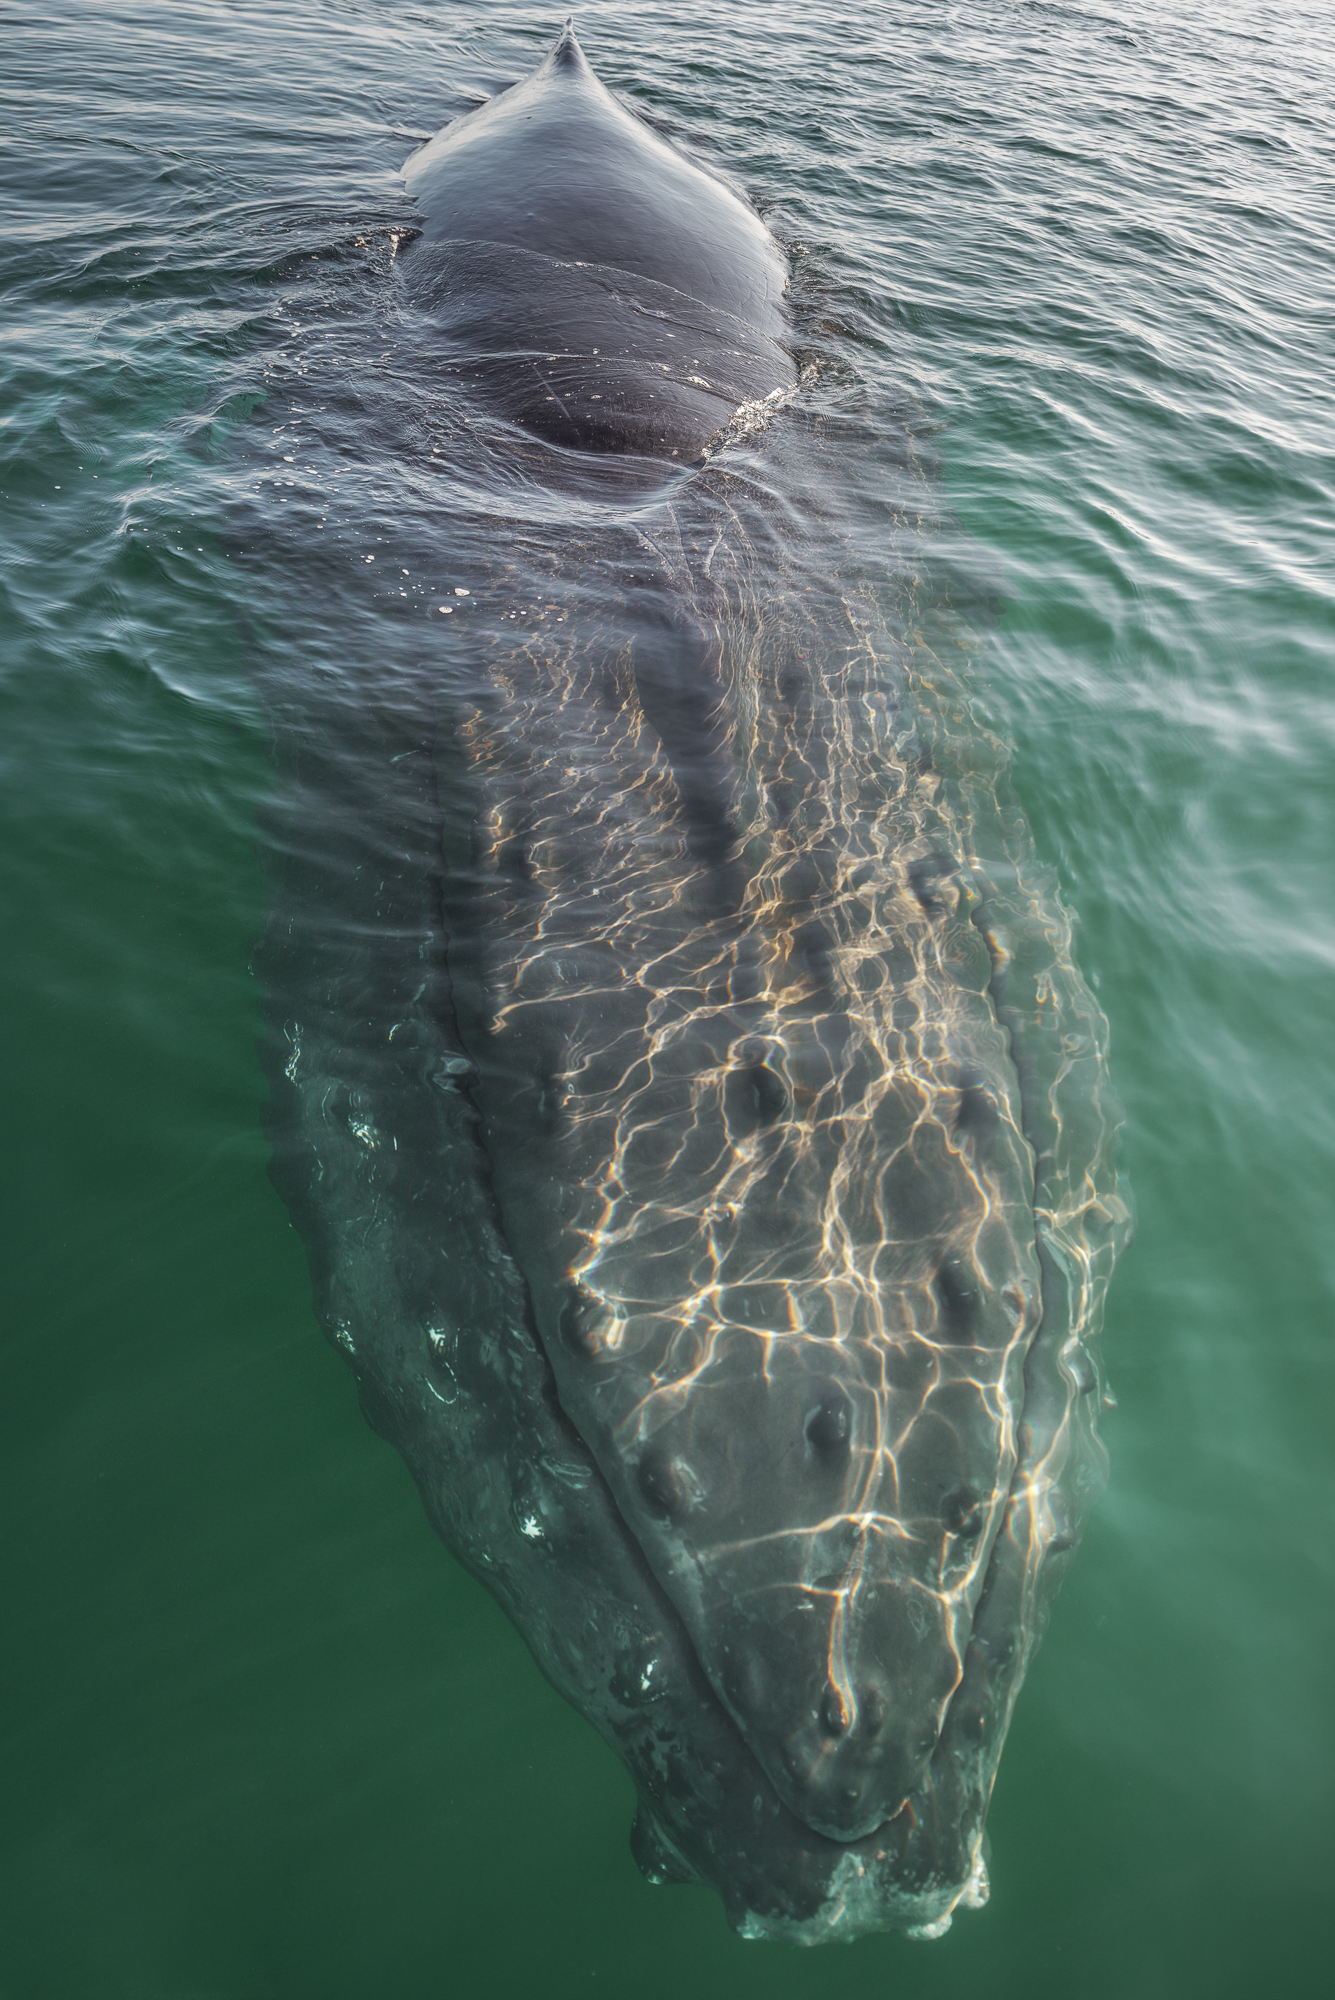 The whales were so close you could touch them. Here is a Humpback coming to say HI